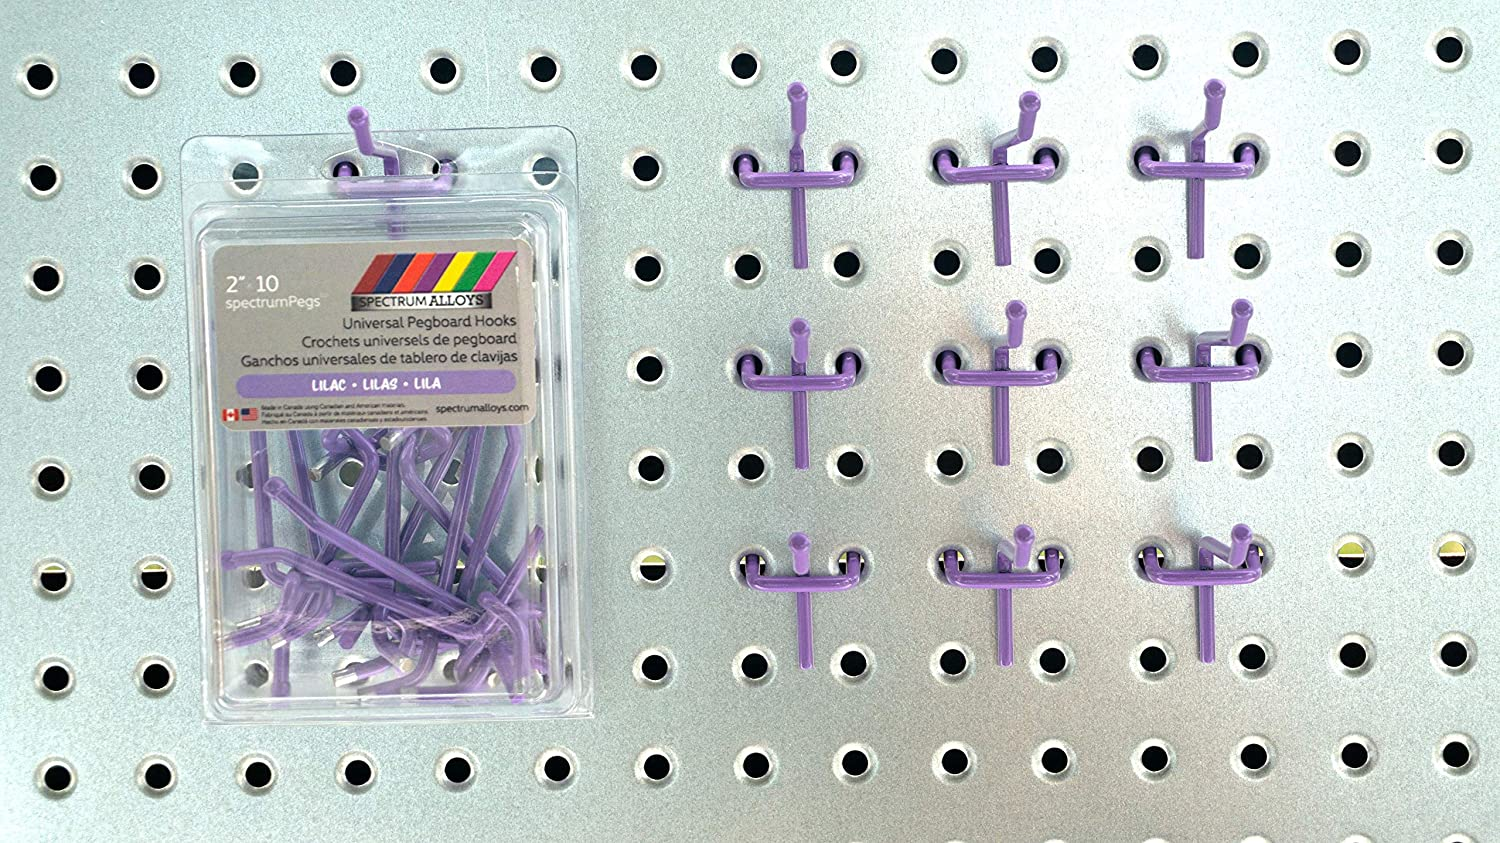 spectrumPegs Universal Light Pink Pegboard Hooks Metal Peg Board Hooks Available in All Colors 2 4 6 peg Hooks in Packs of 10 or 25 2 x 10, Bubblegum Pink